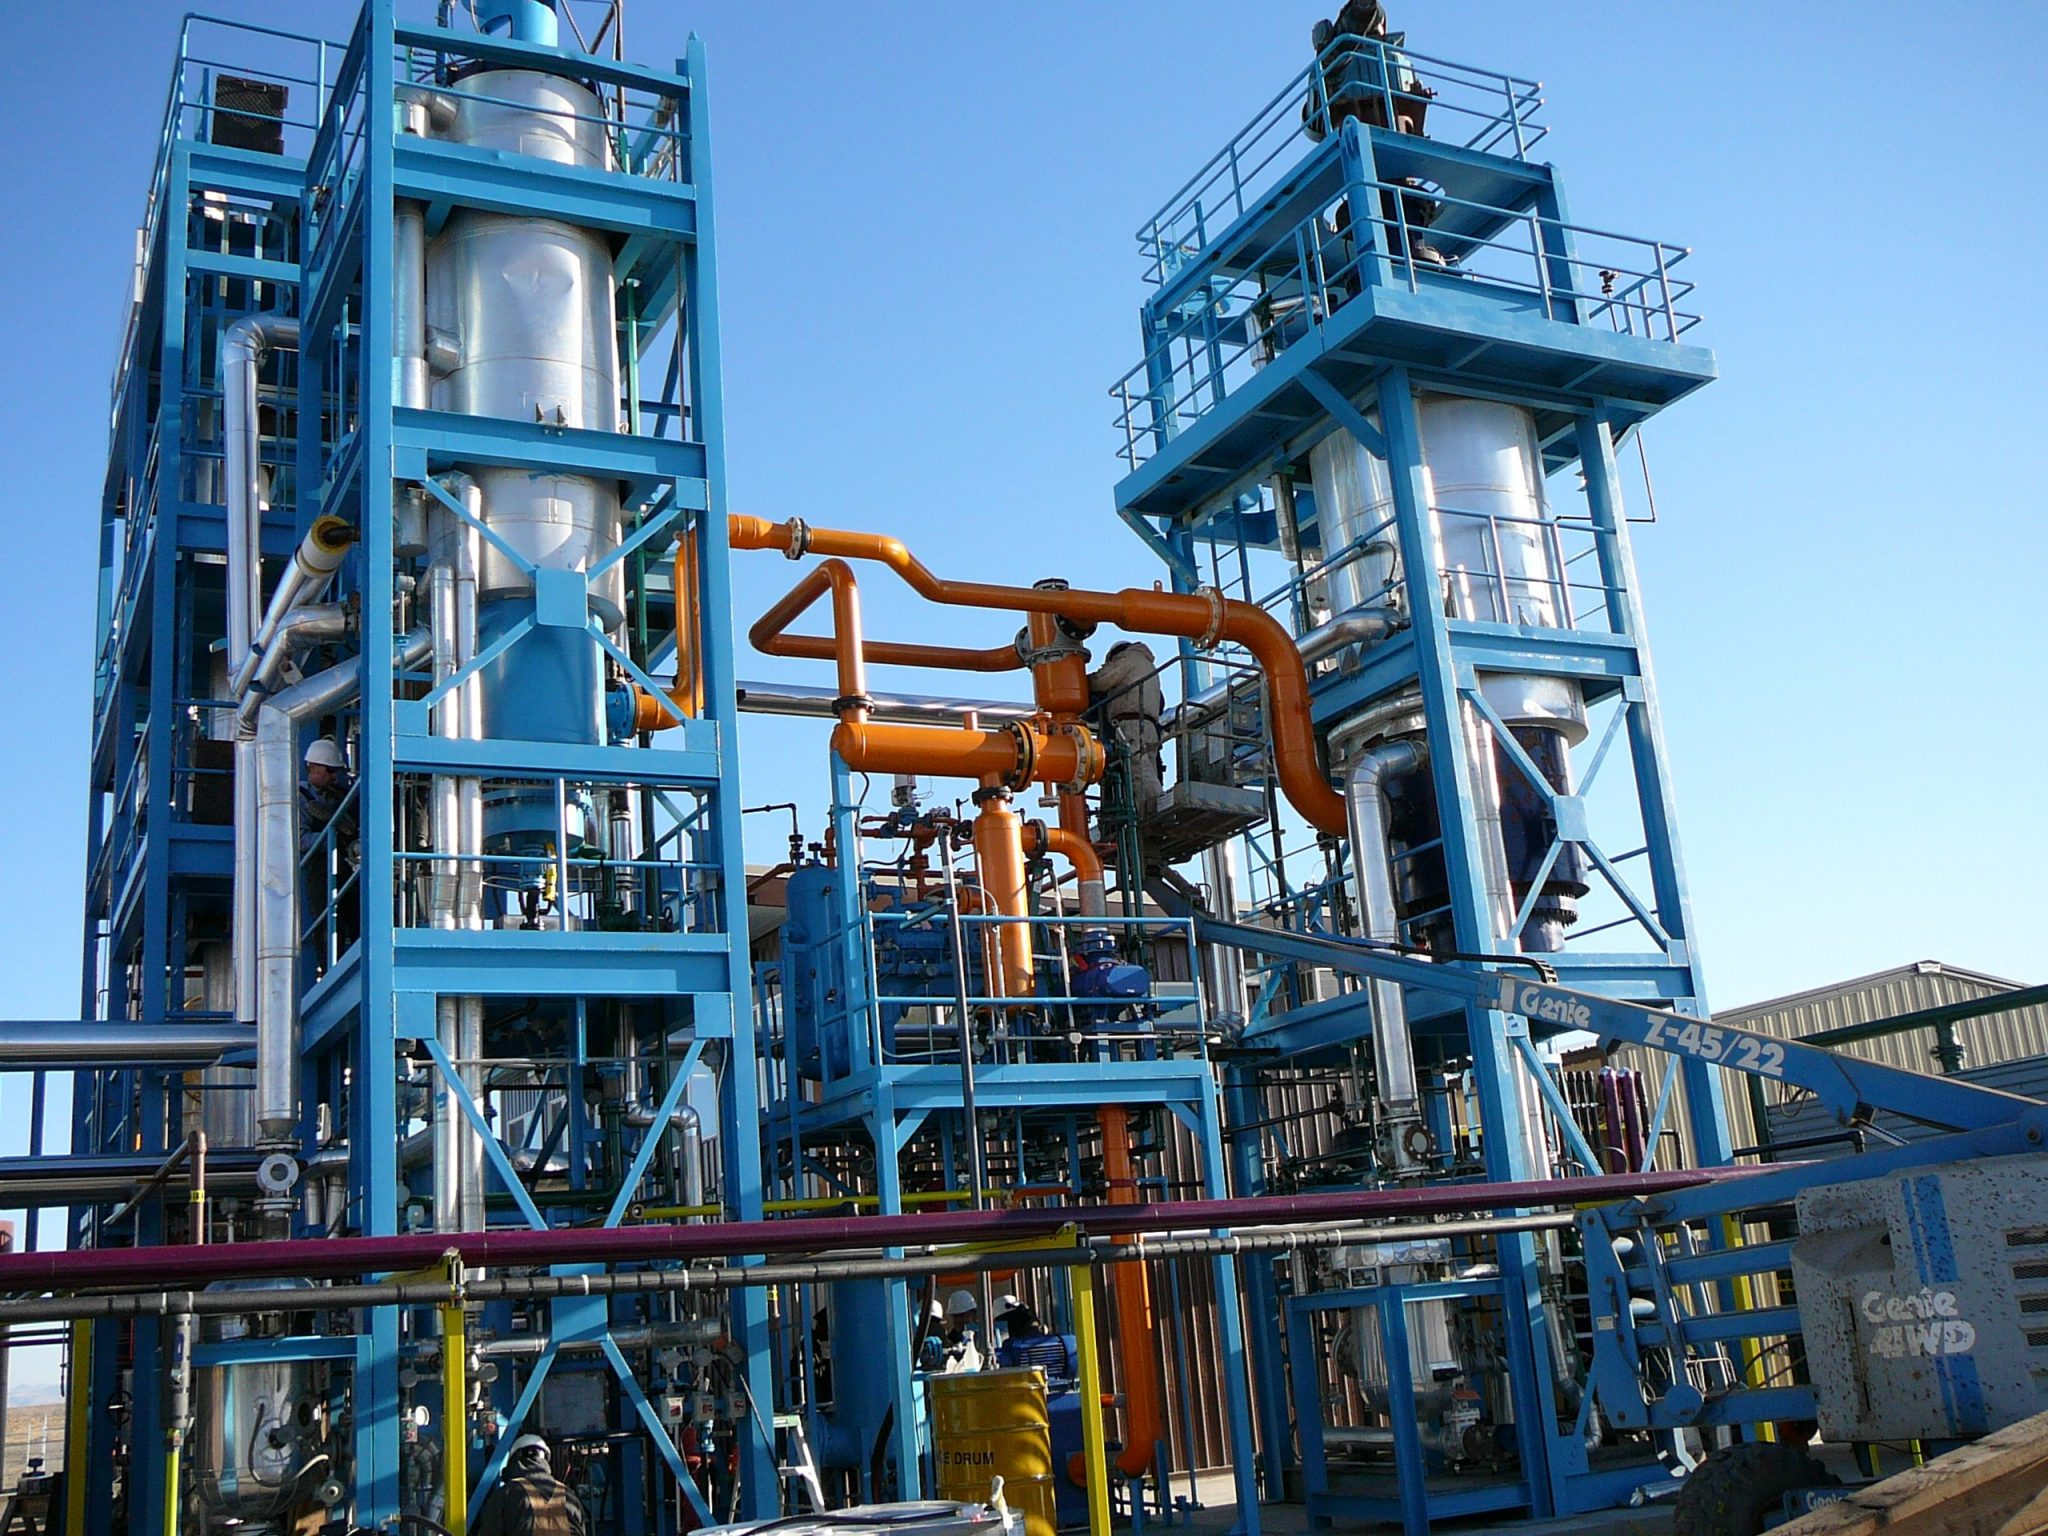 Oil recycling evaporator skids